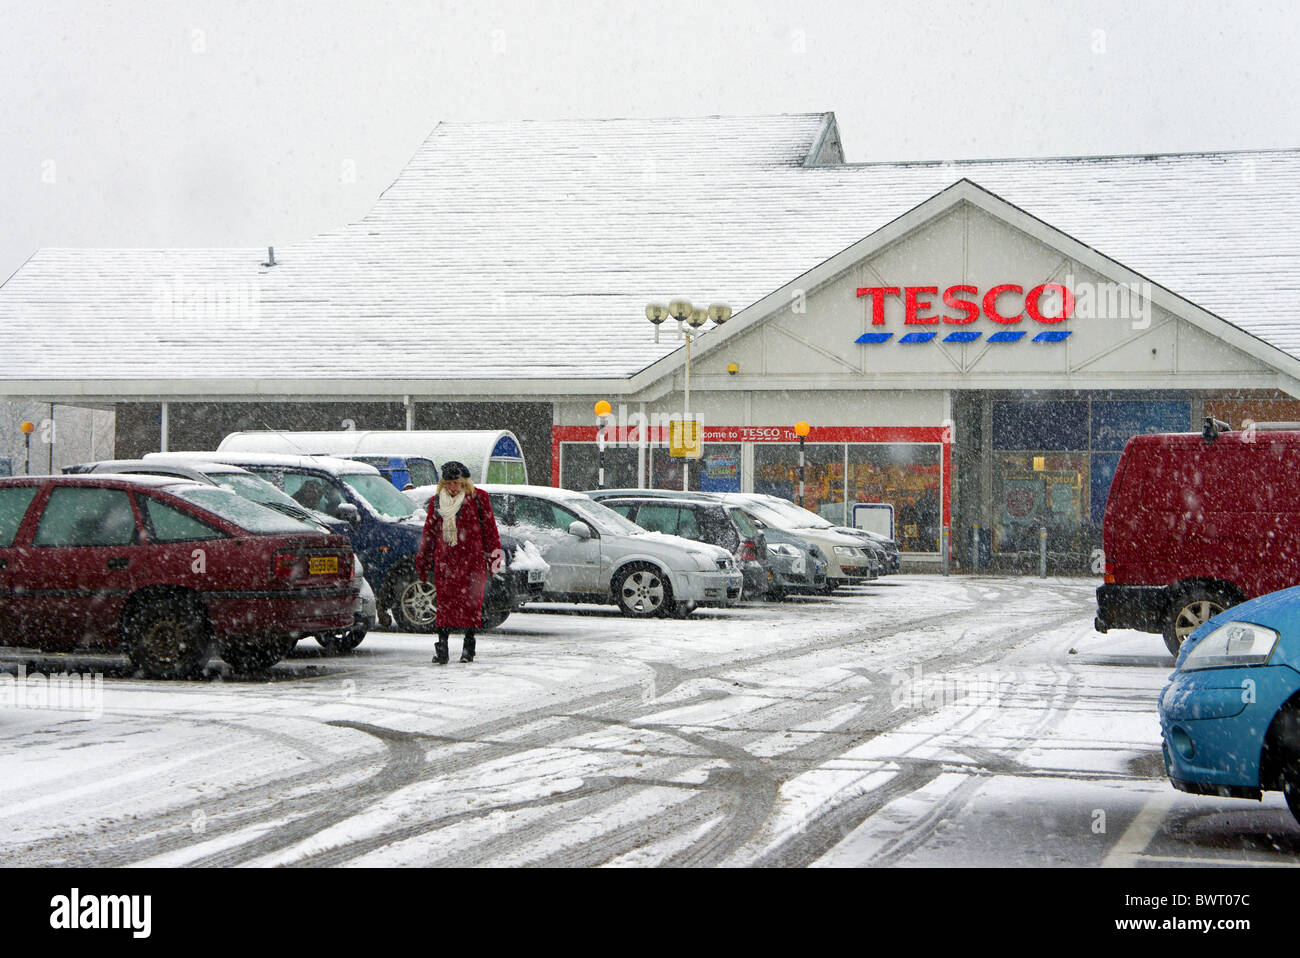 heavy snow falling in the car park at the Tesco store in Truro, Cornwall, UK - Stock Image